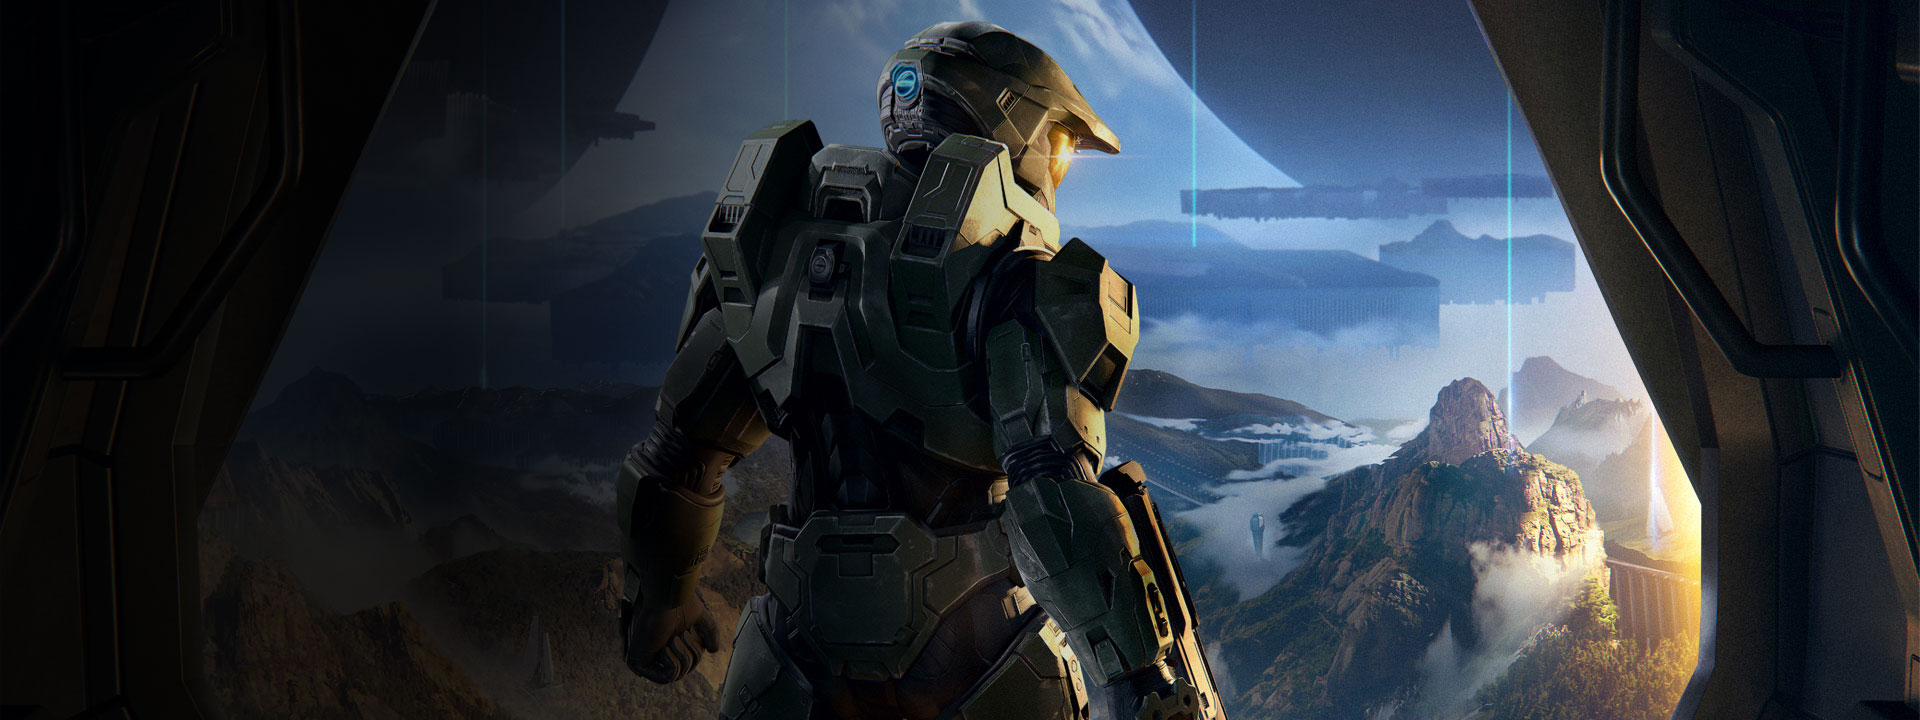 Master Chief looks out on a mountainous landscape from a ship doorway